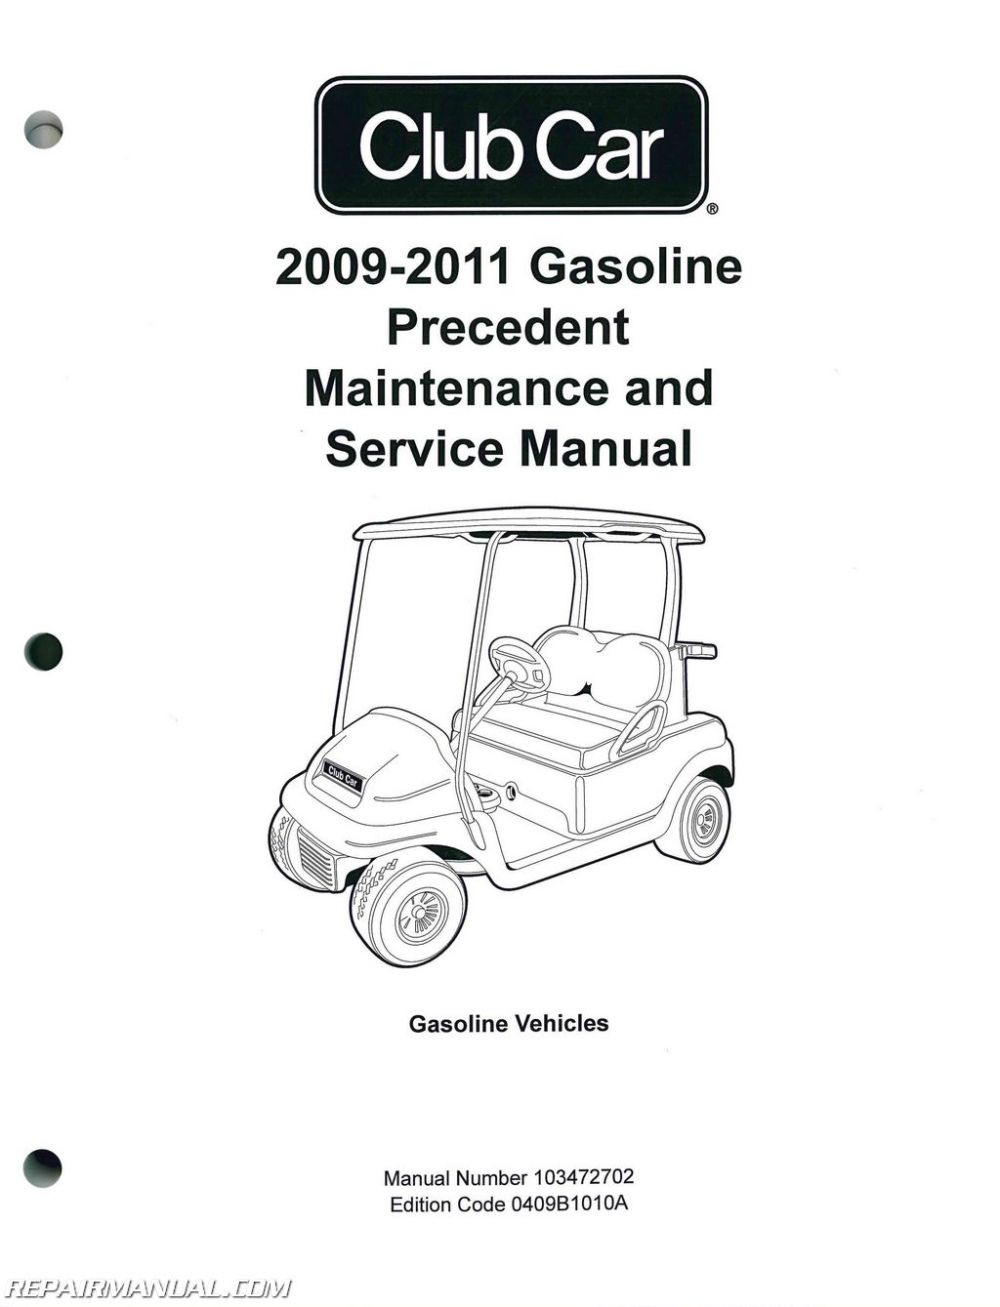 medium resolution of 2009 2011 club car gasoline precedent maintenance and service 1986 club car fuse box source 36 volt club car wiring 1986 wiring diagram